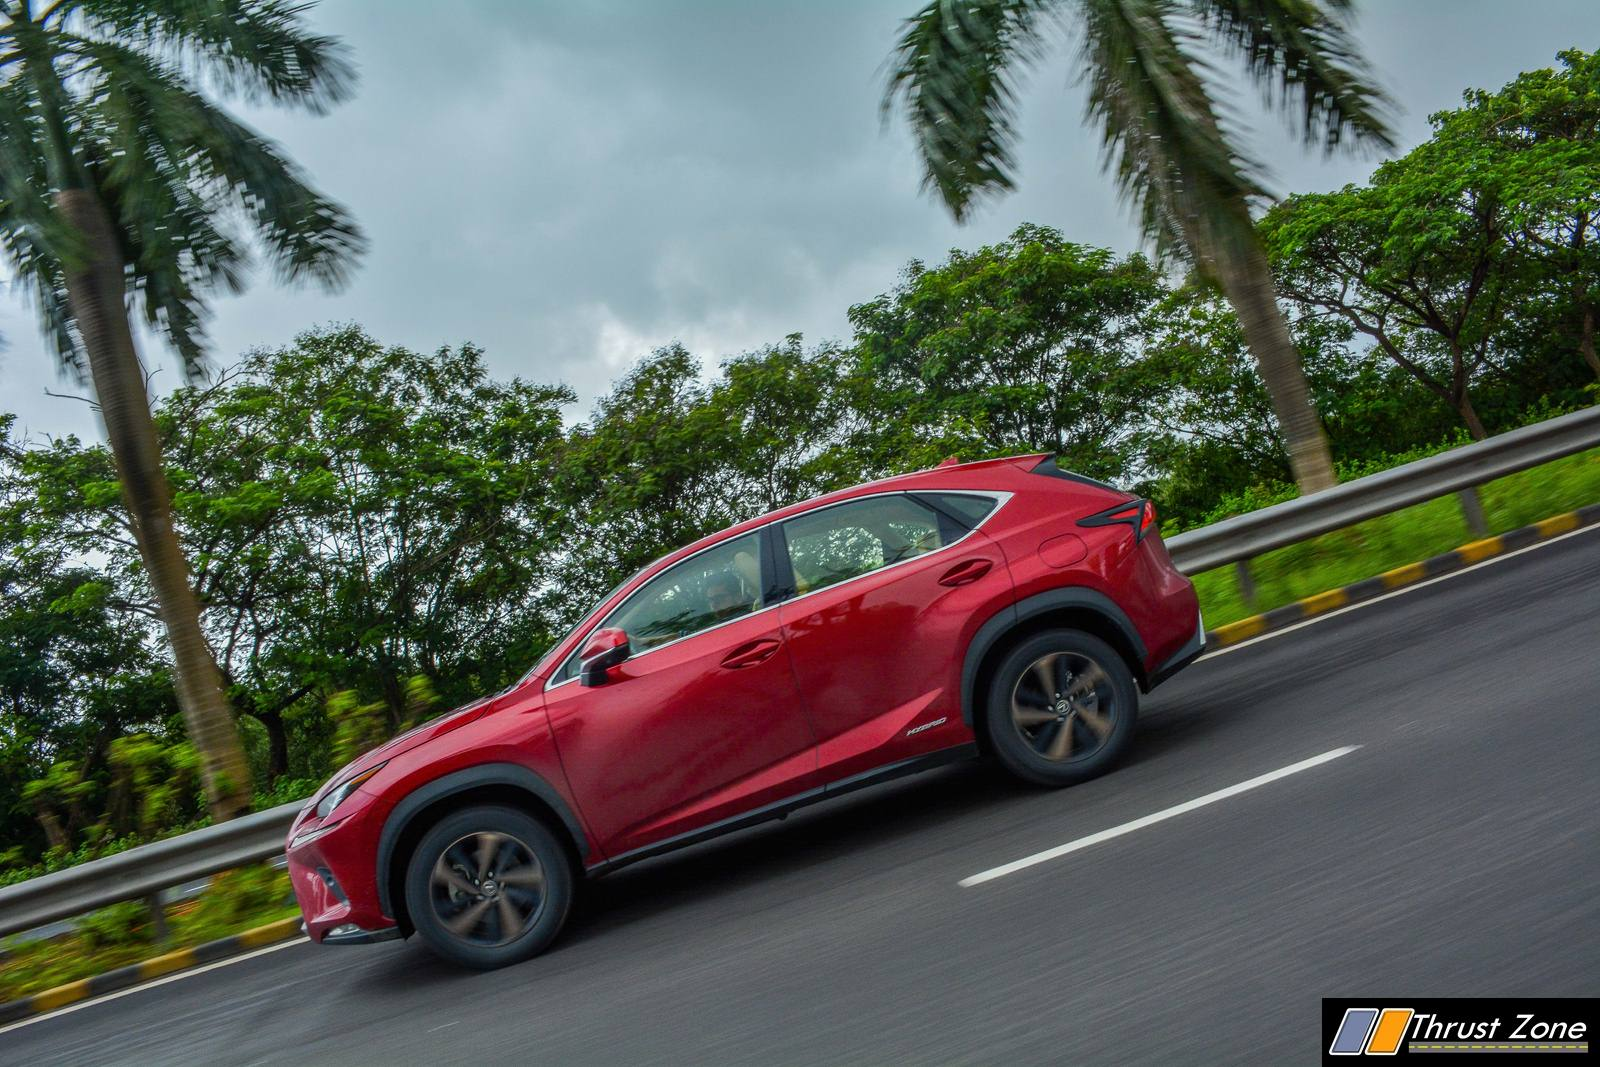 https://www.thrustzone.com/wp-content/uploads/2018/07/2018-Lexus-NX300h-India-Review-3.jpg